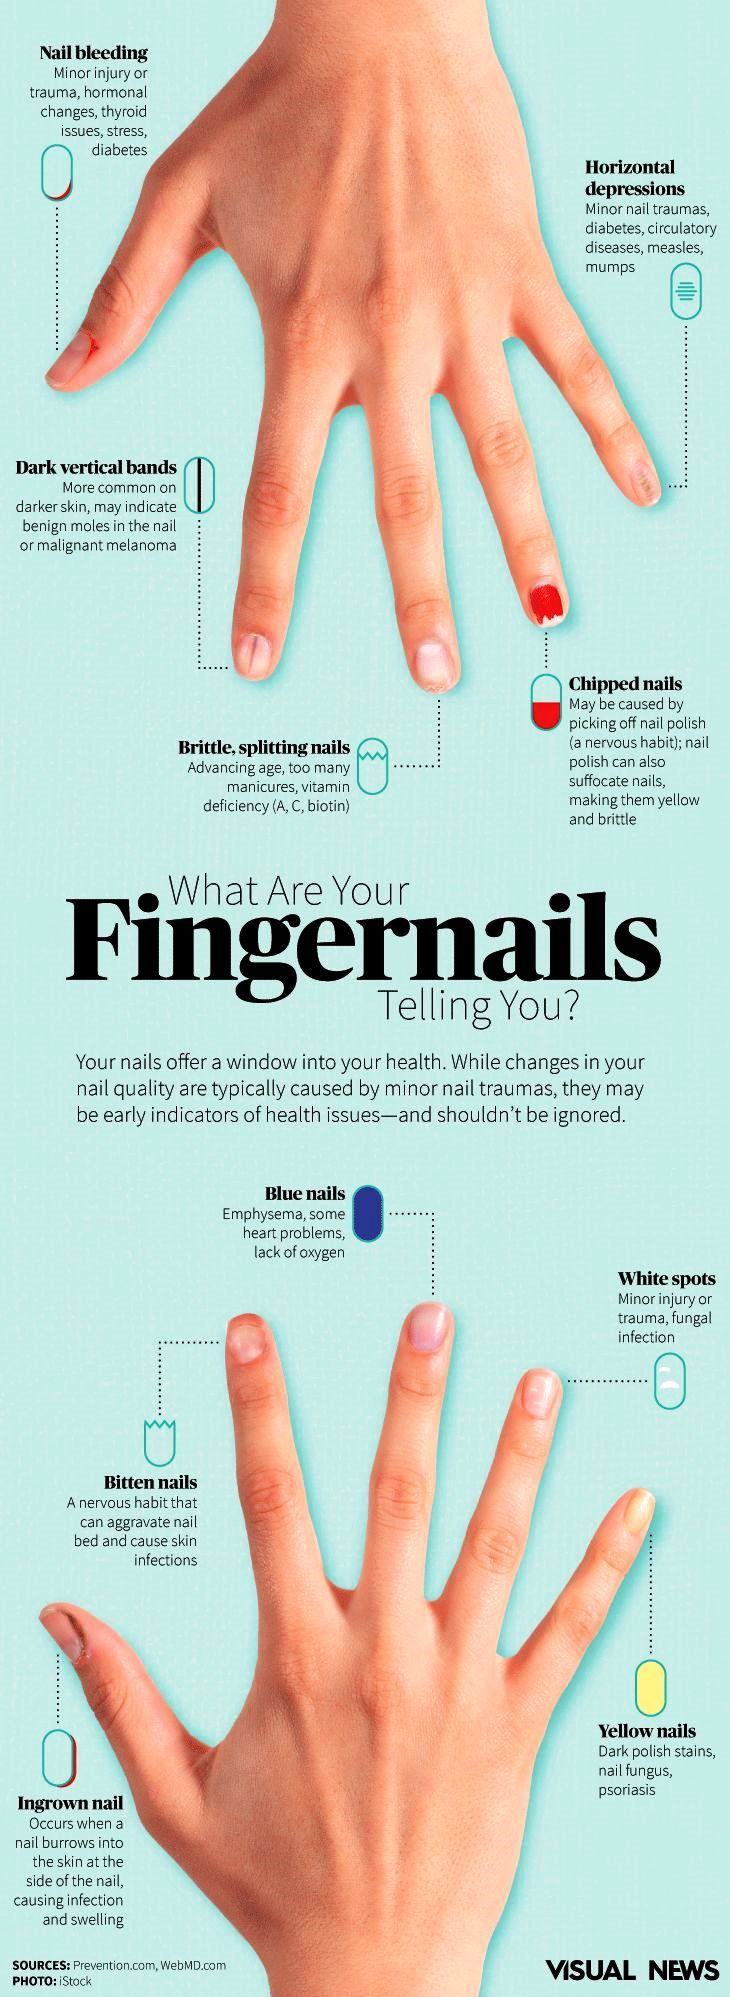 Your Offer A Window Into Health While Changes In Quality Are Typically Caused By Minor Nail Traumas They May Be Early Indicators Of